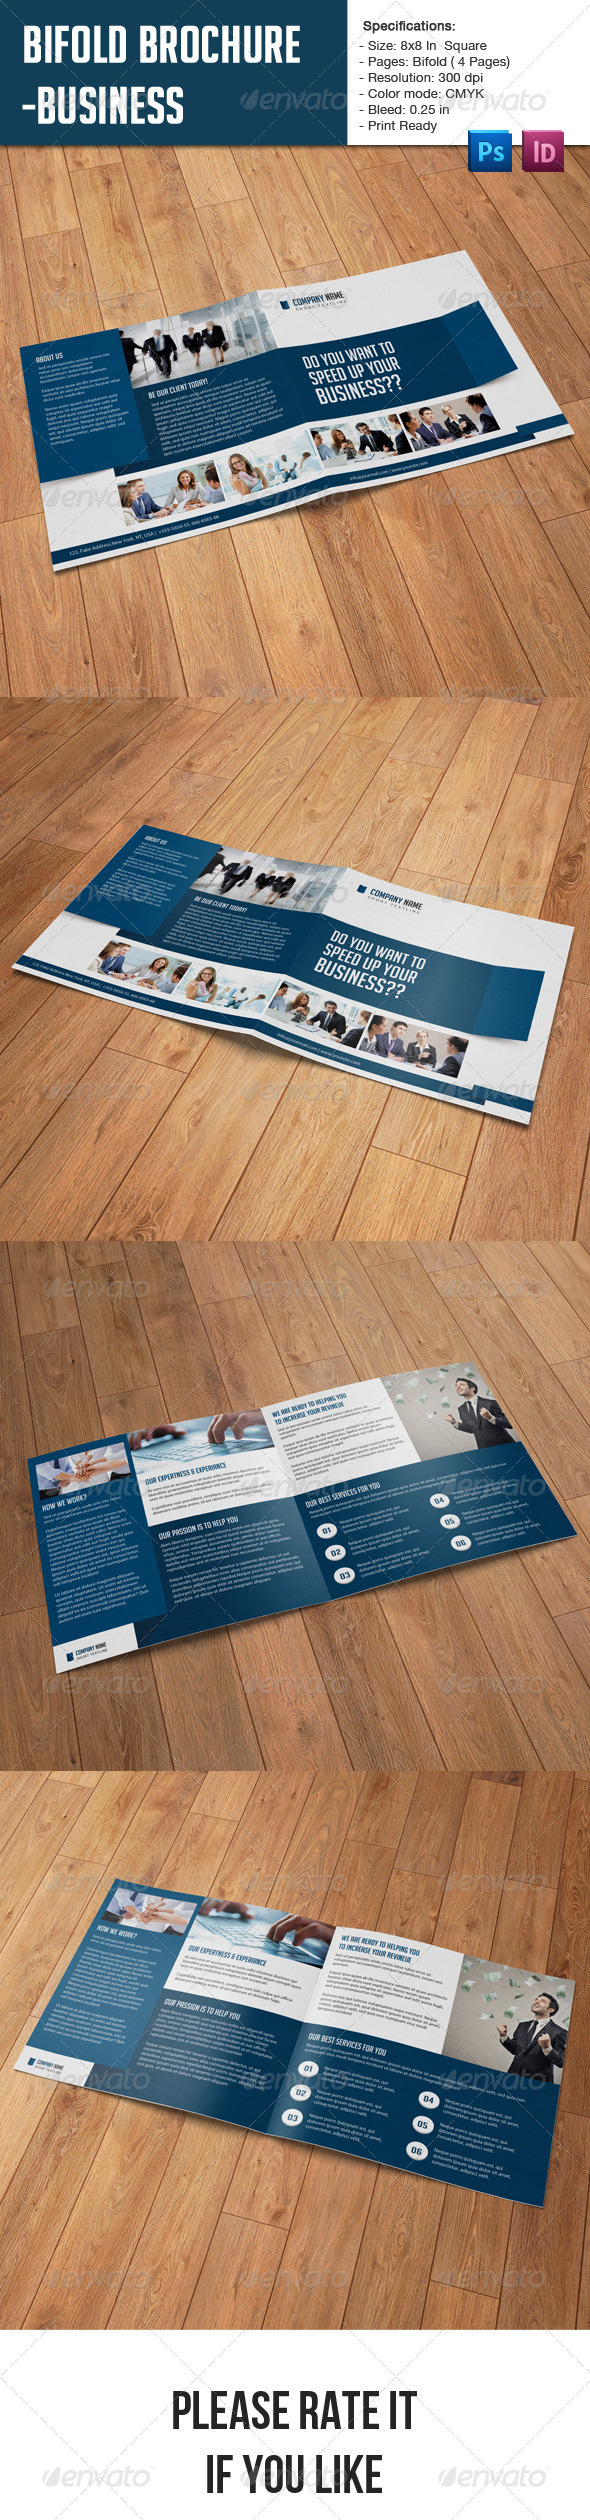 Square Bifold Business Brochure - Corporate Brochures